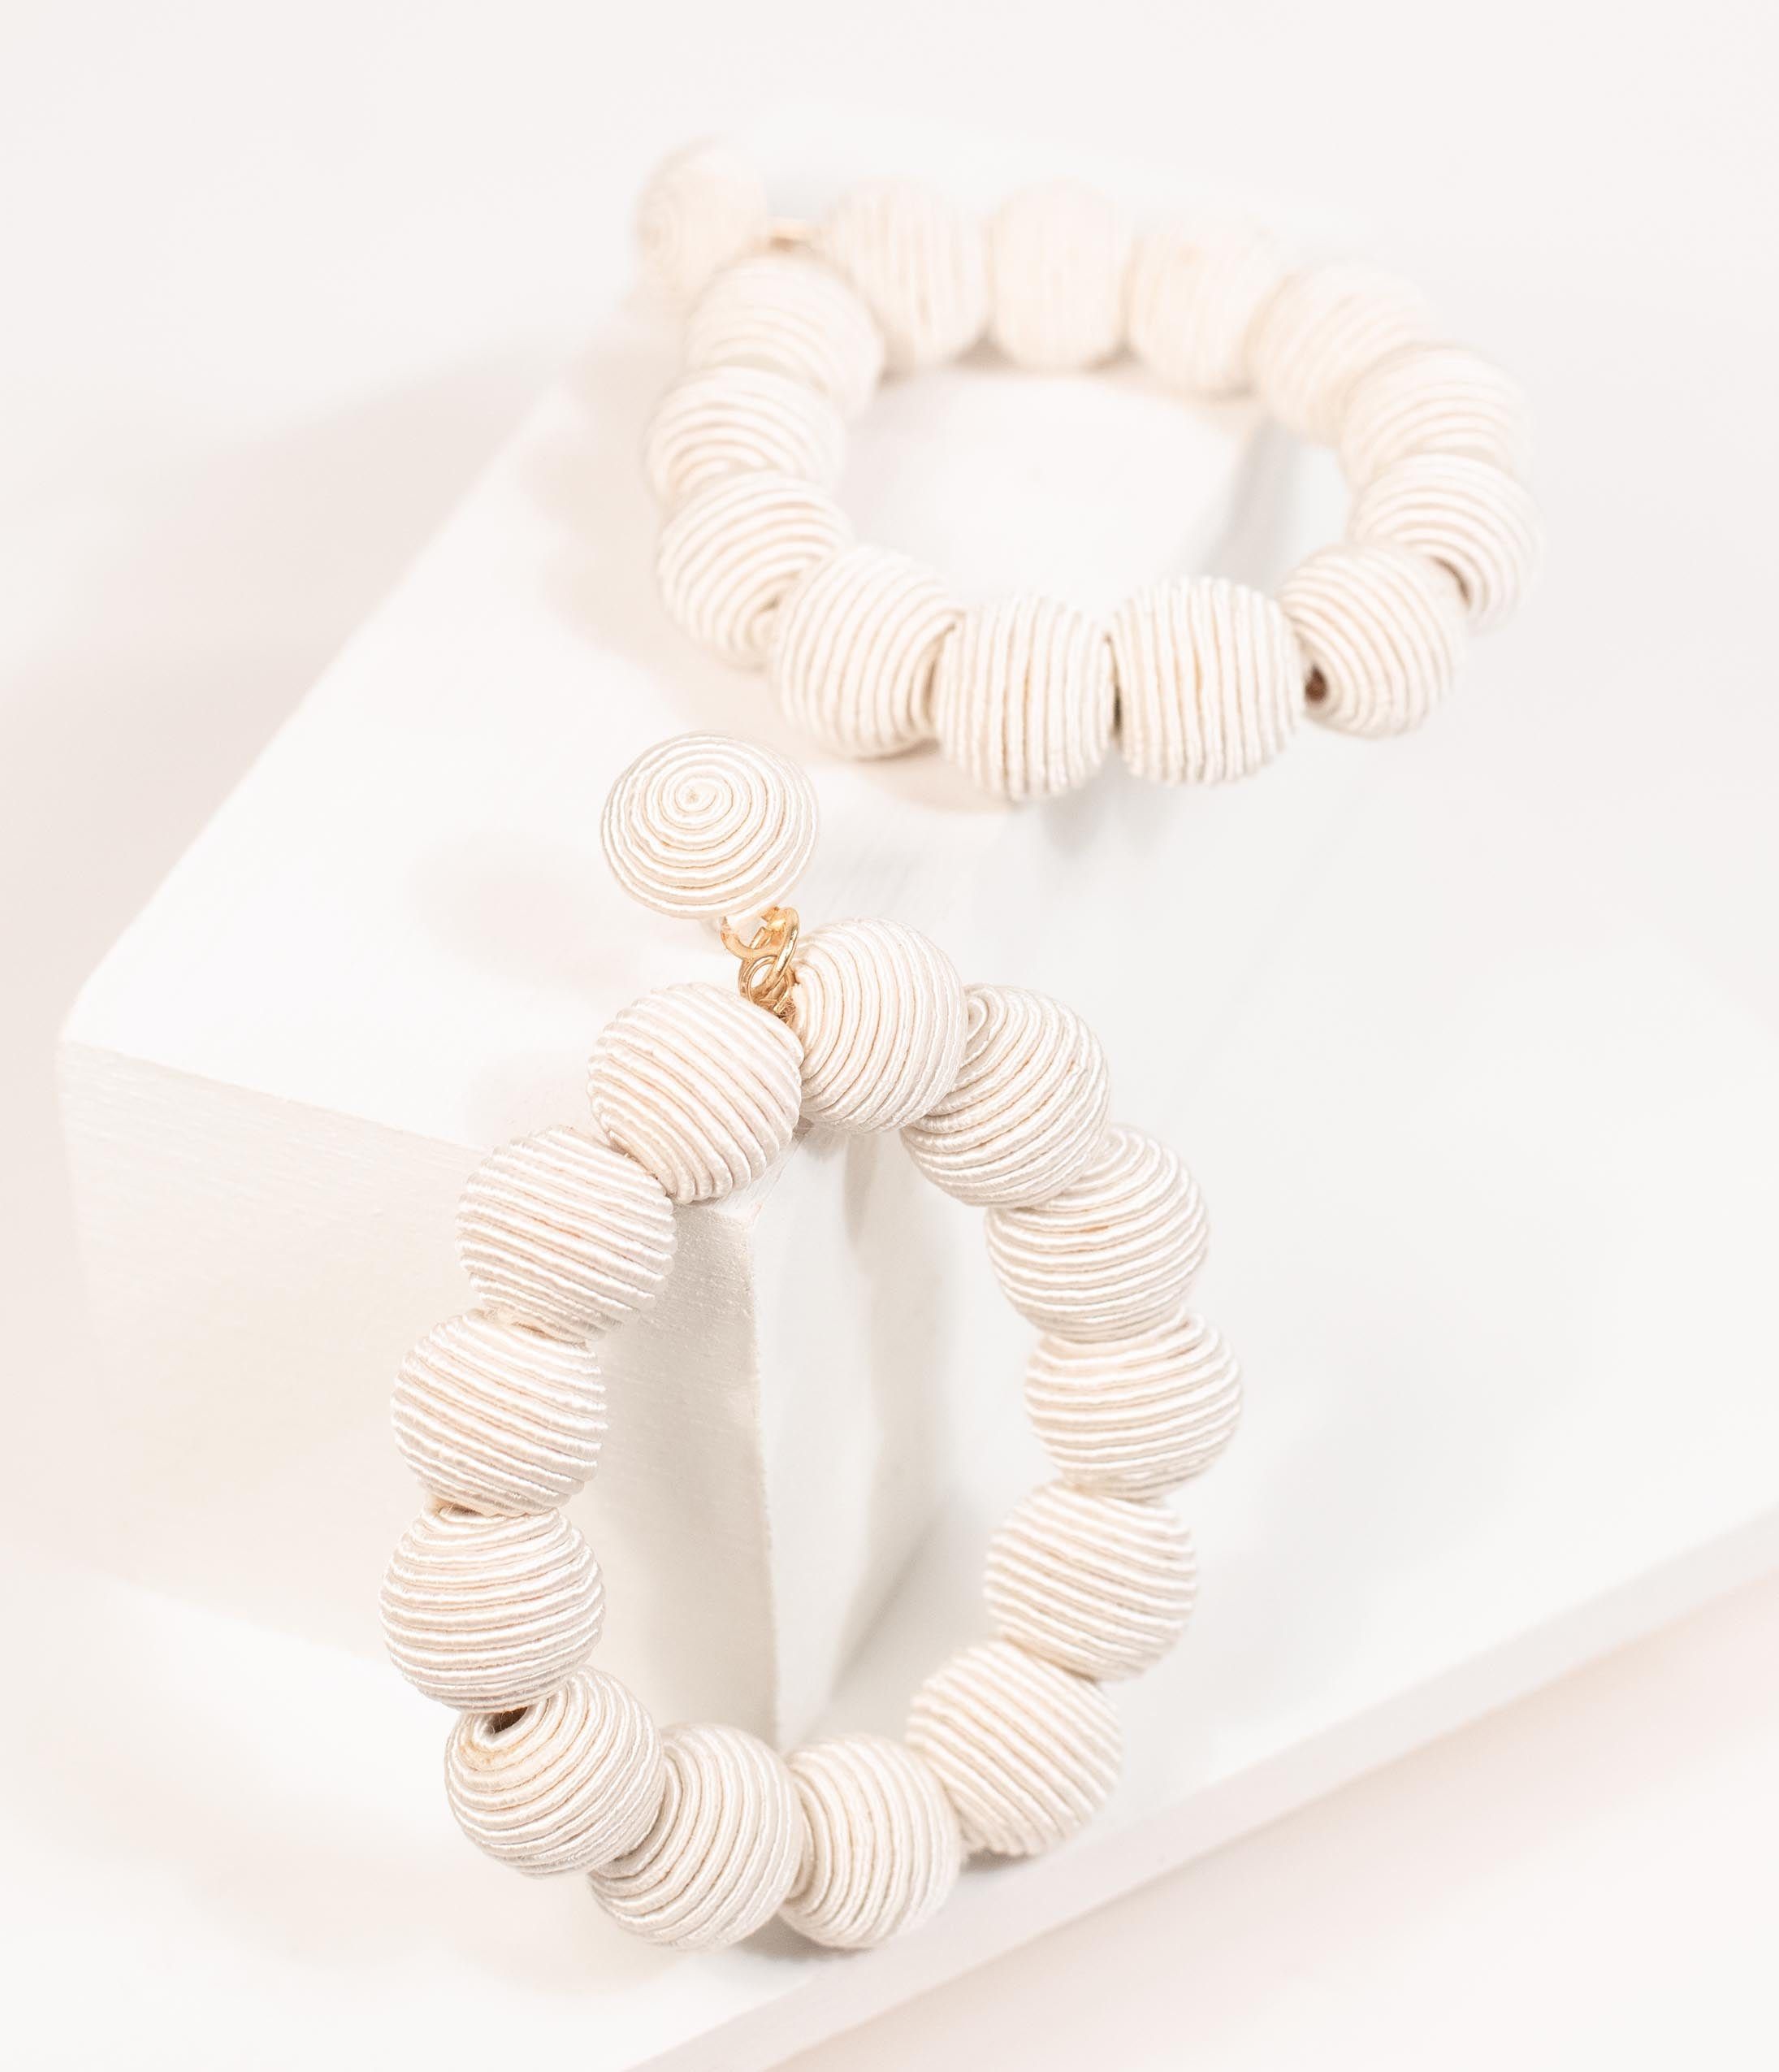 Vintage Style Jewelry, Retro Jewelry 1960S Style Ivory Woven Beaded Hoop Drop Earrings $38.00 AT vintagedancer.com